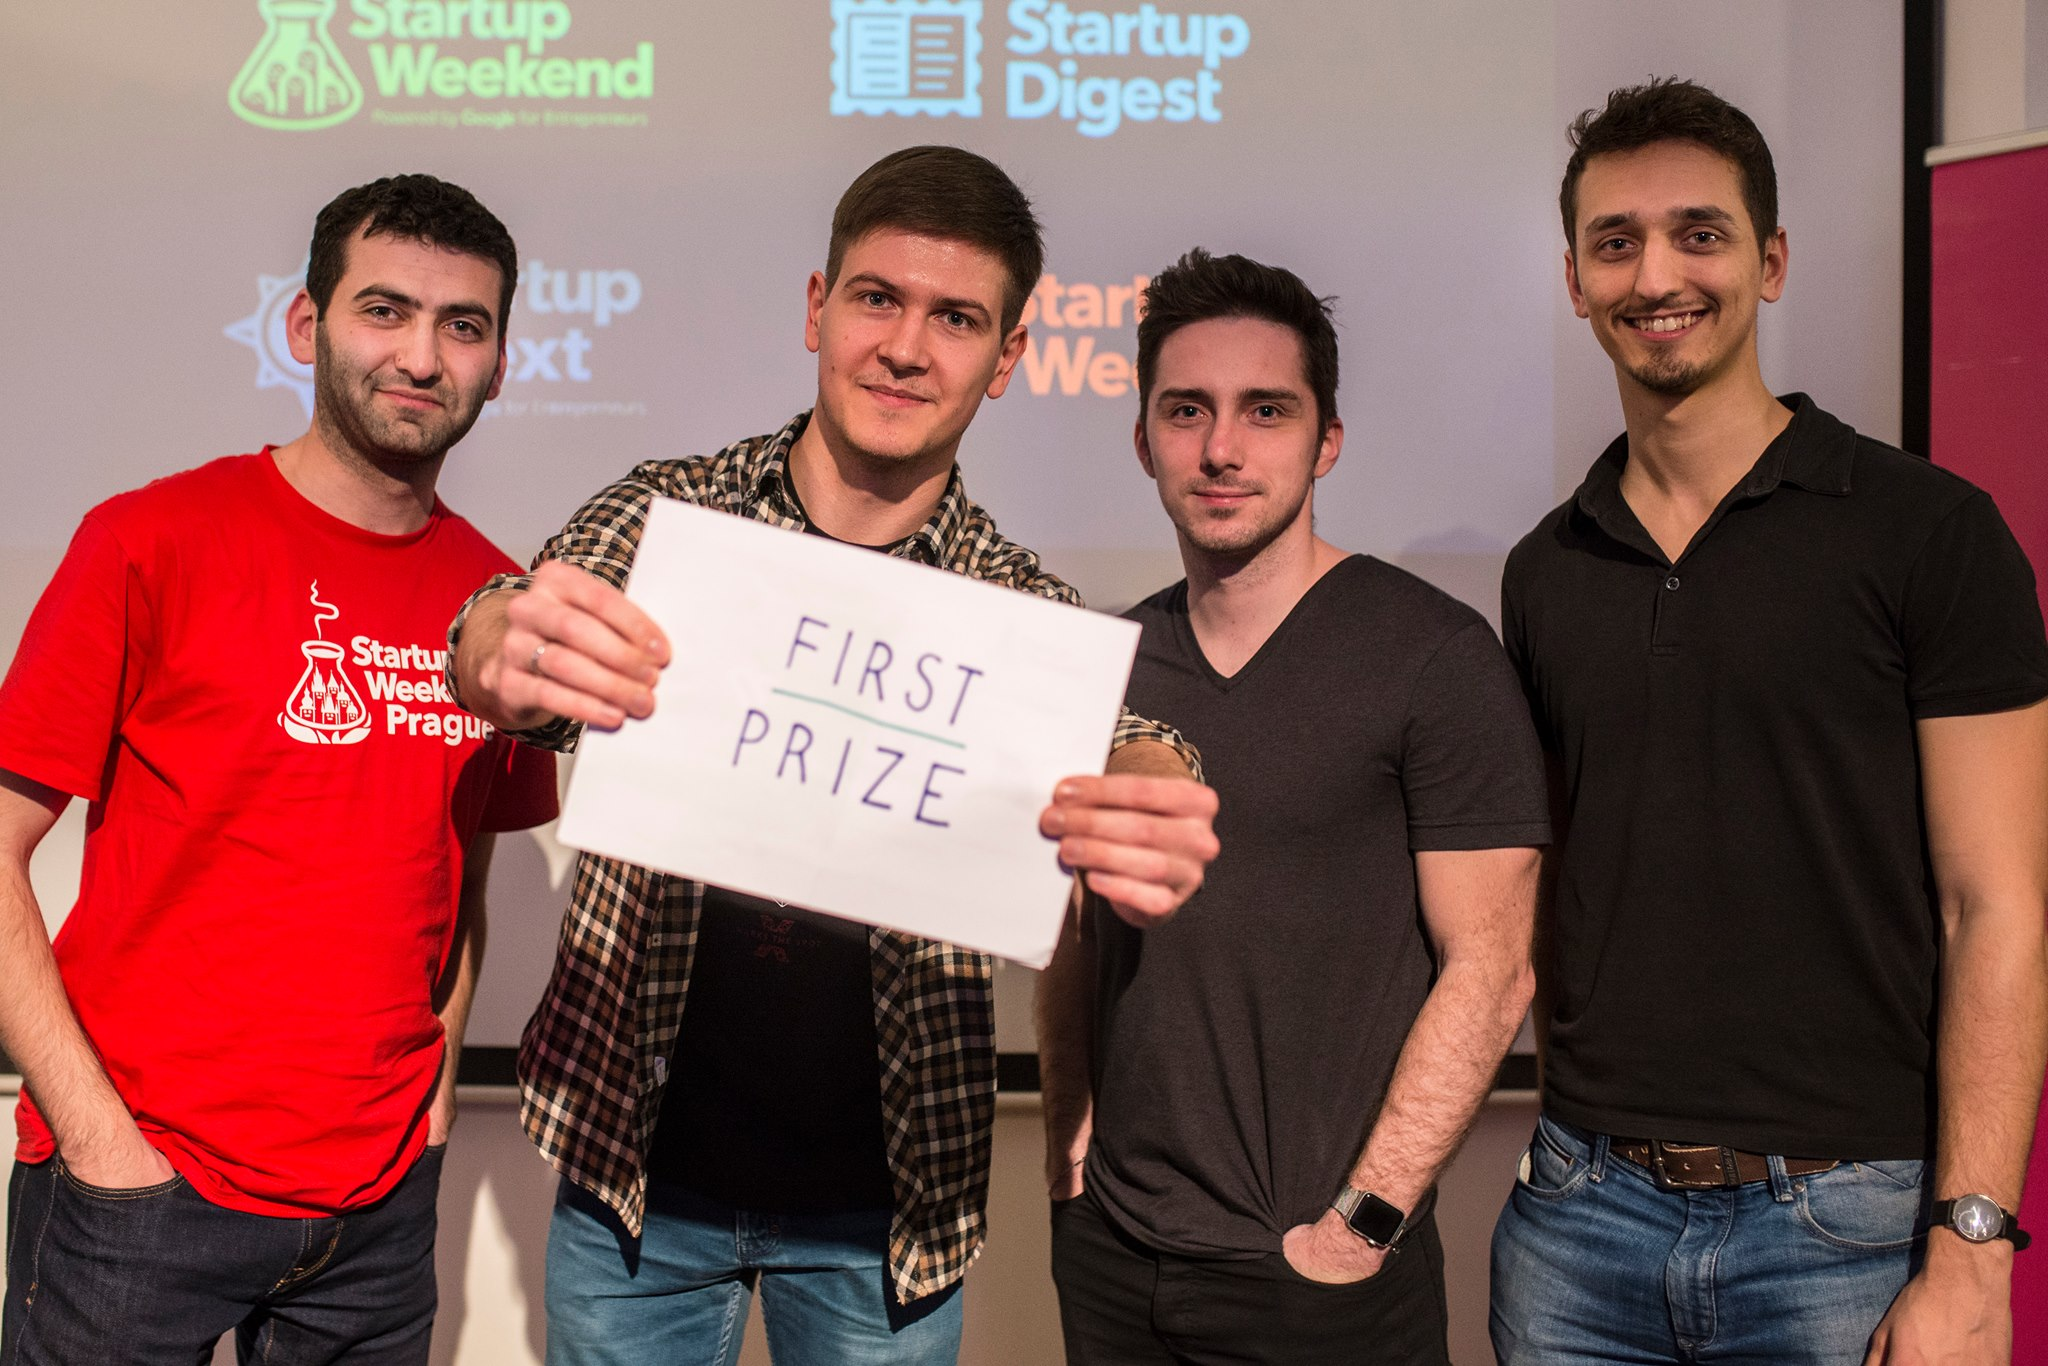 startup weekend first prize